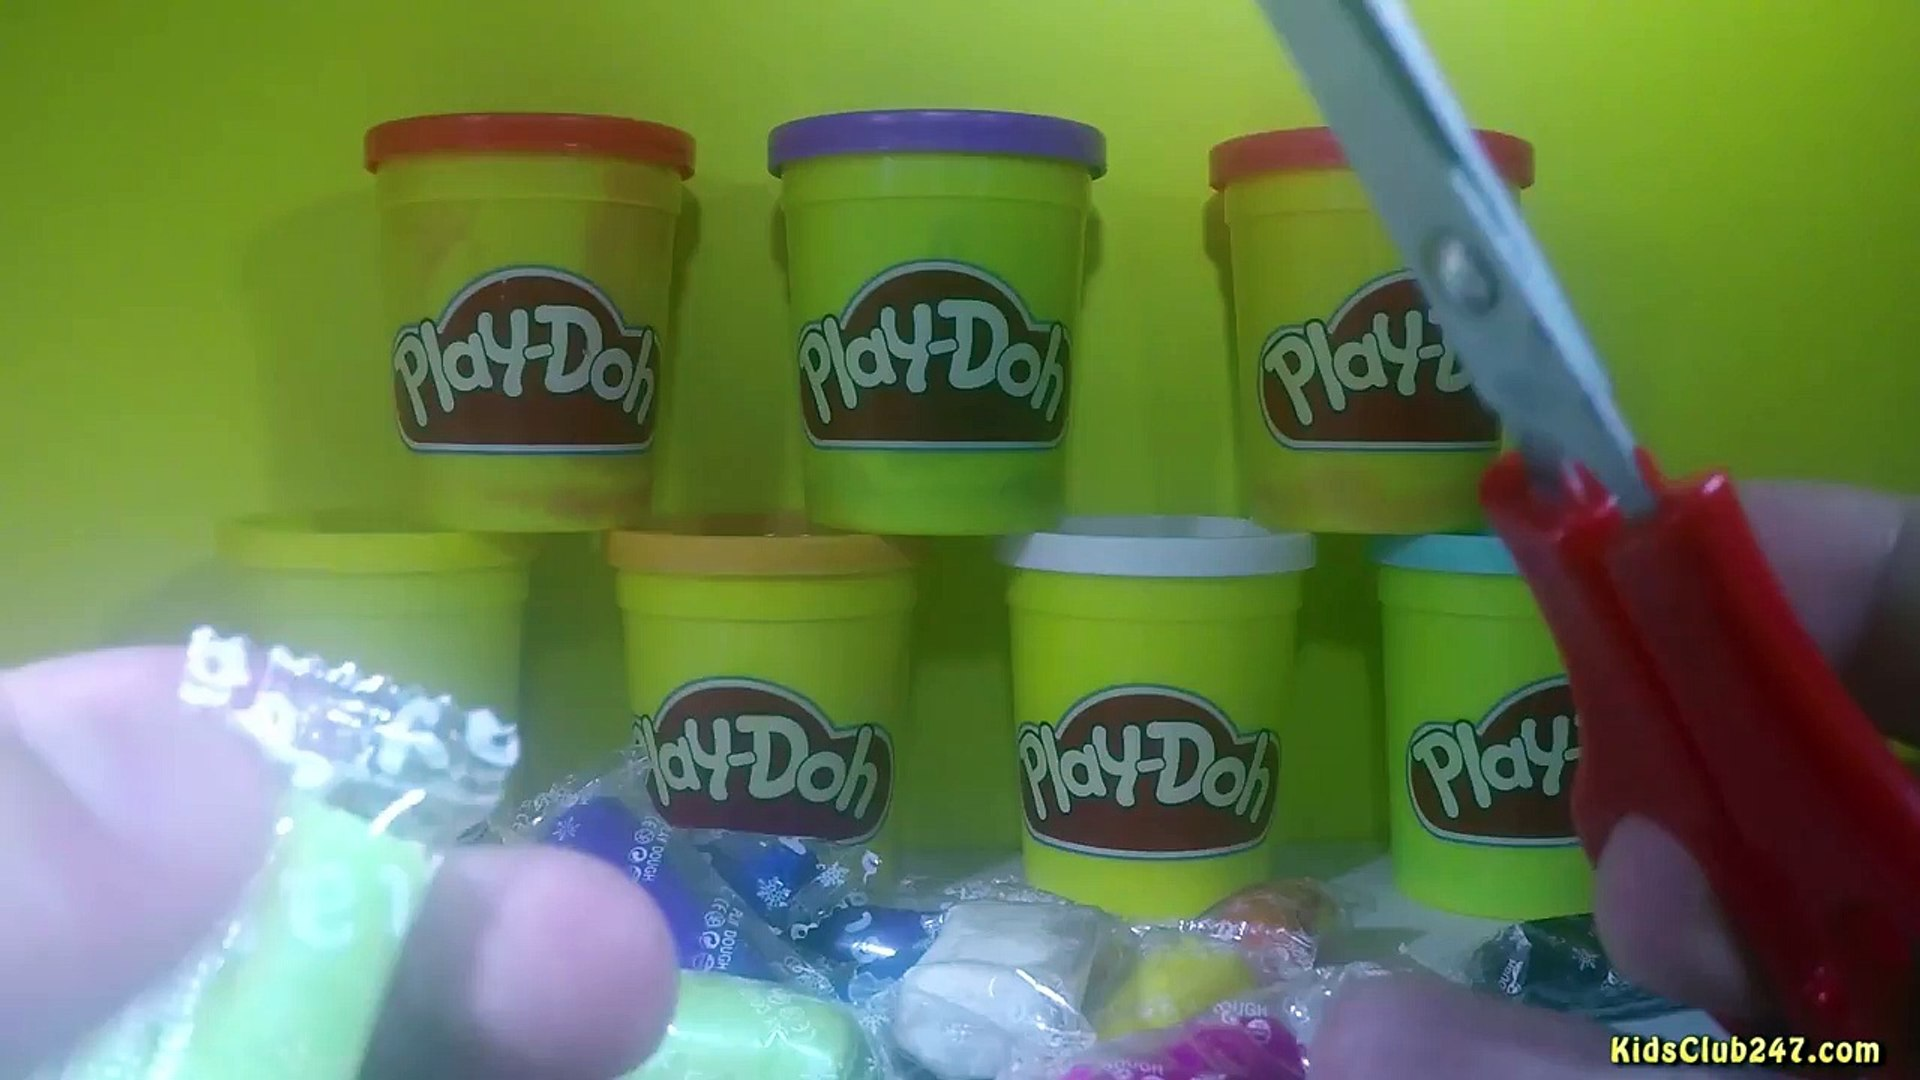 Play Doh 2016 | Happy New Year 2016 | New Year 2016 Play Doh | Play Doh New Year